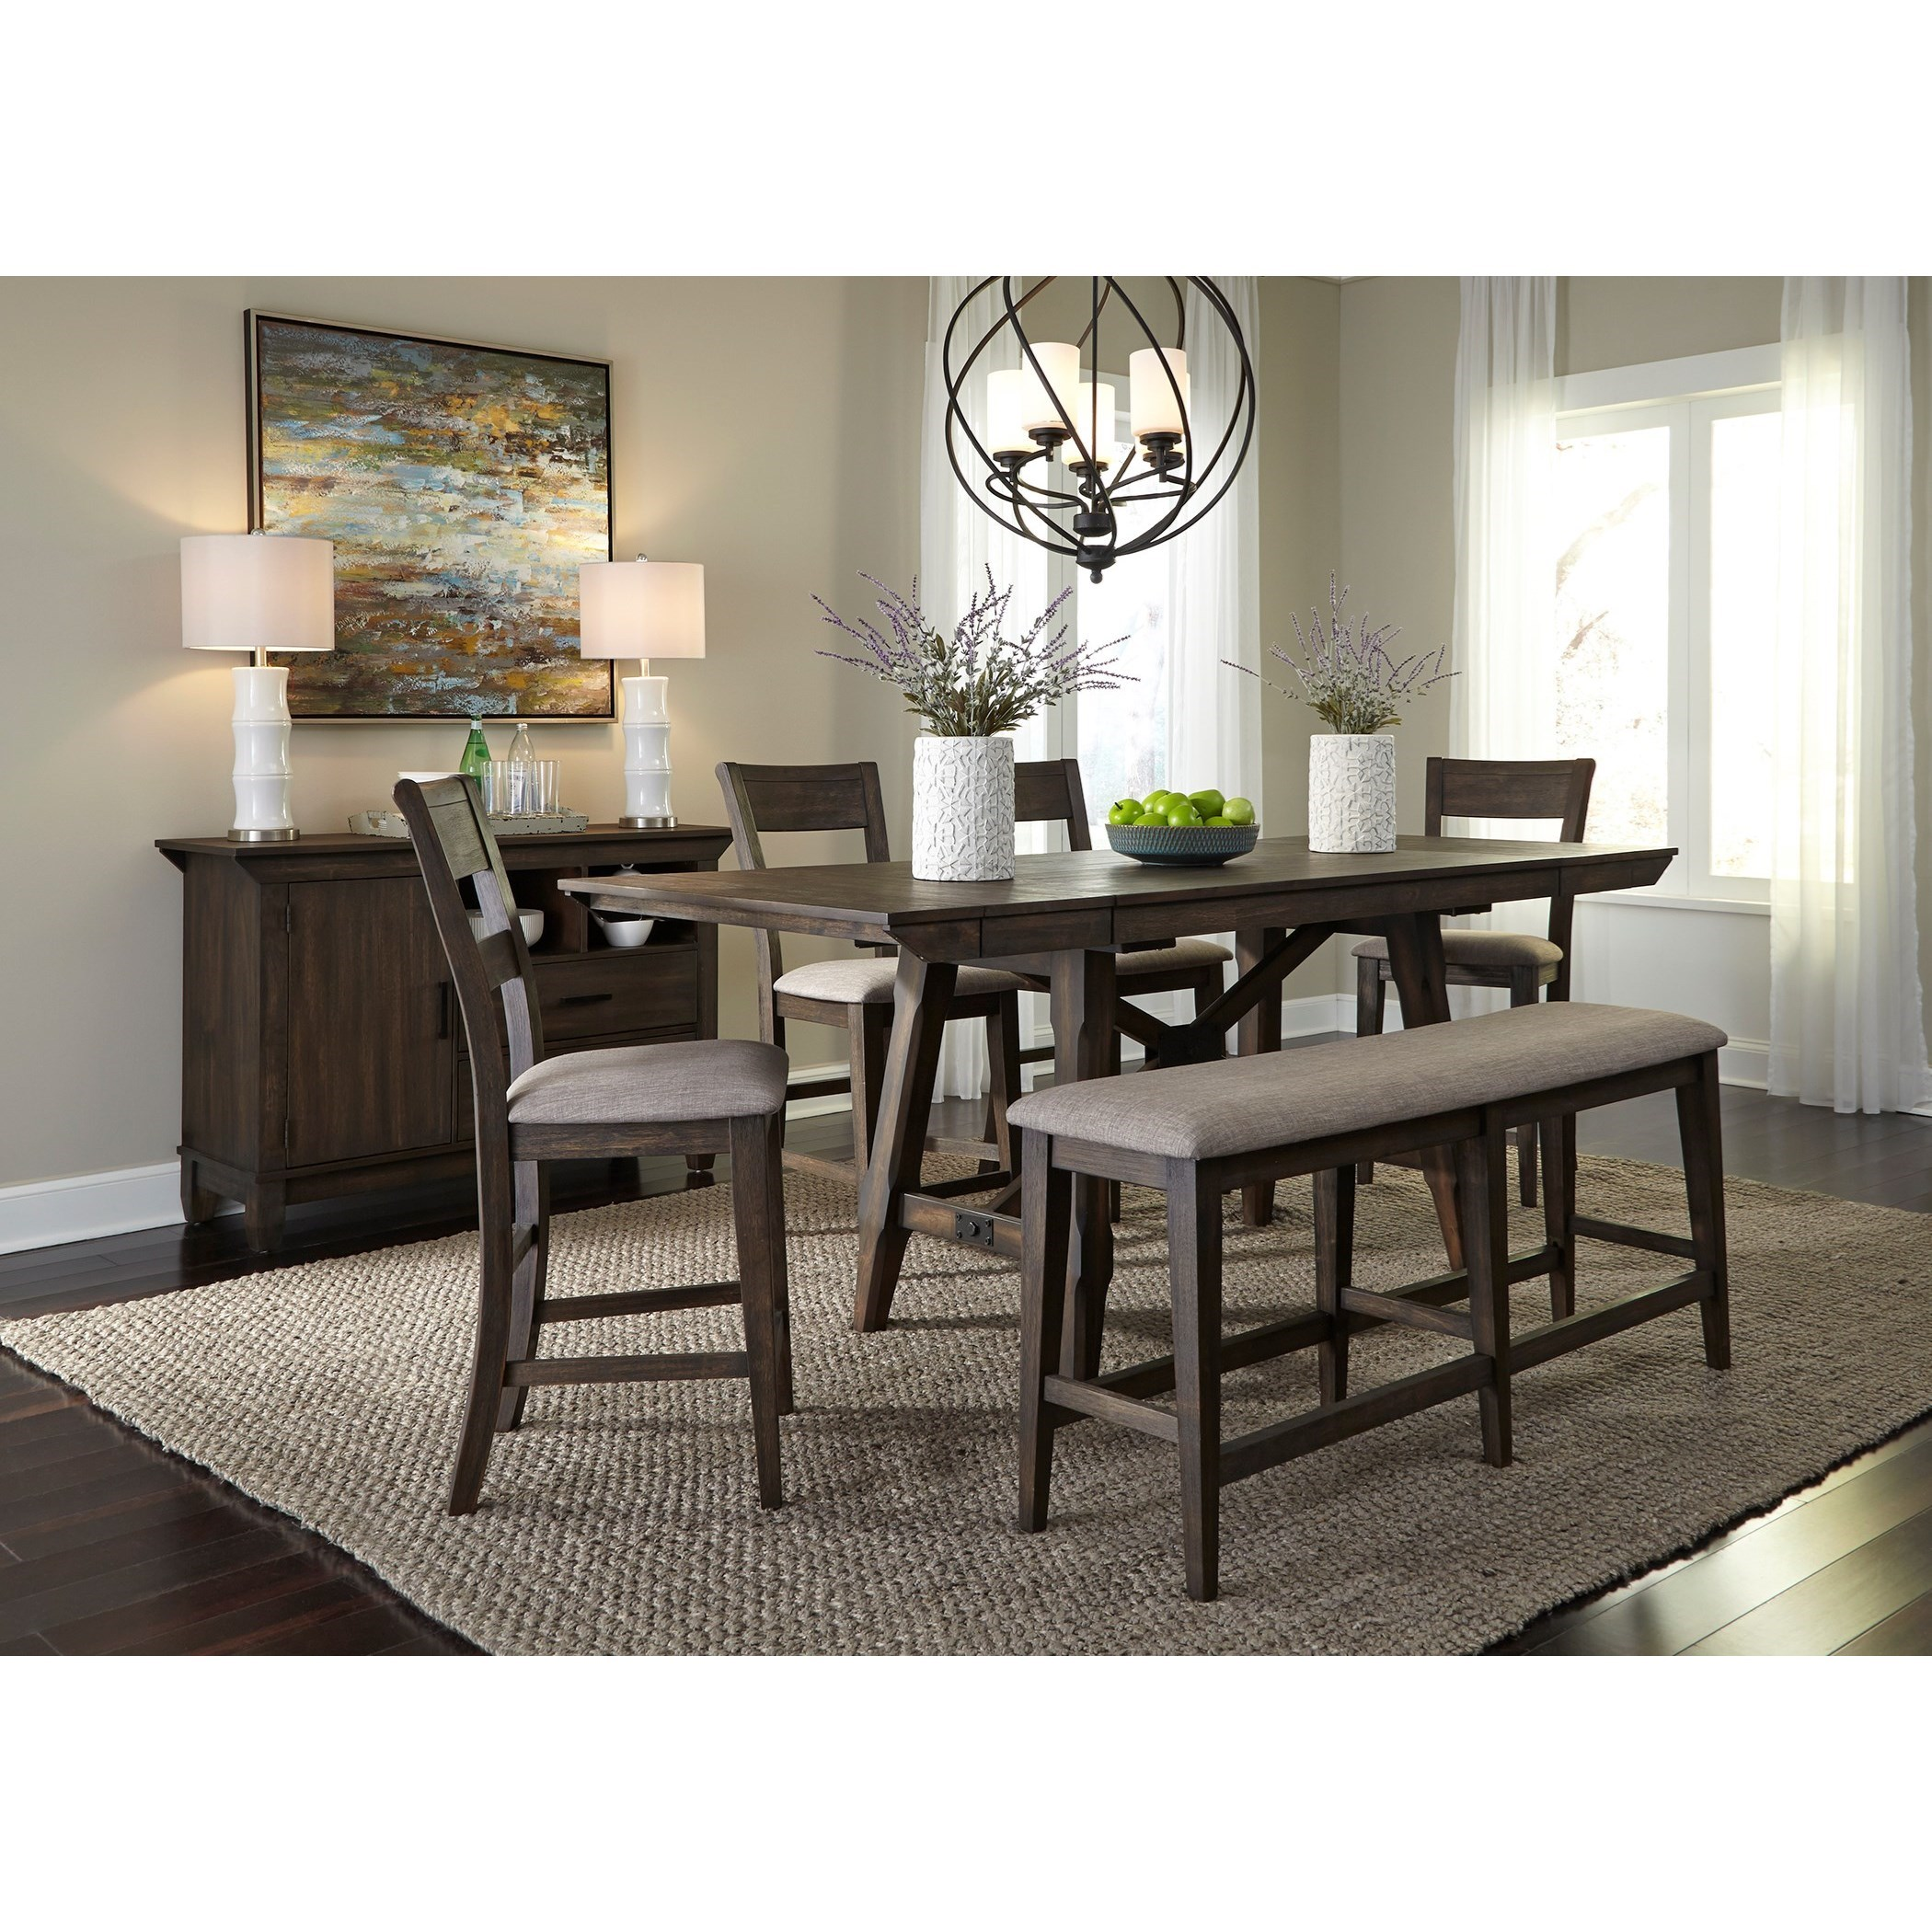 Double Bridge Dining Room Group by Liberty Furniture at Zak's Home